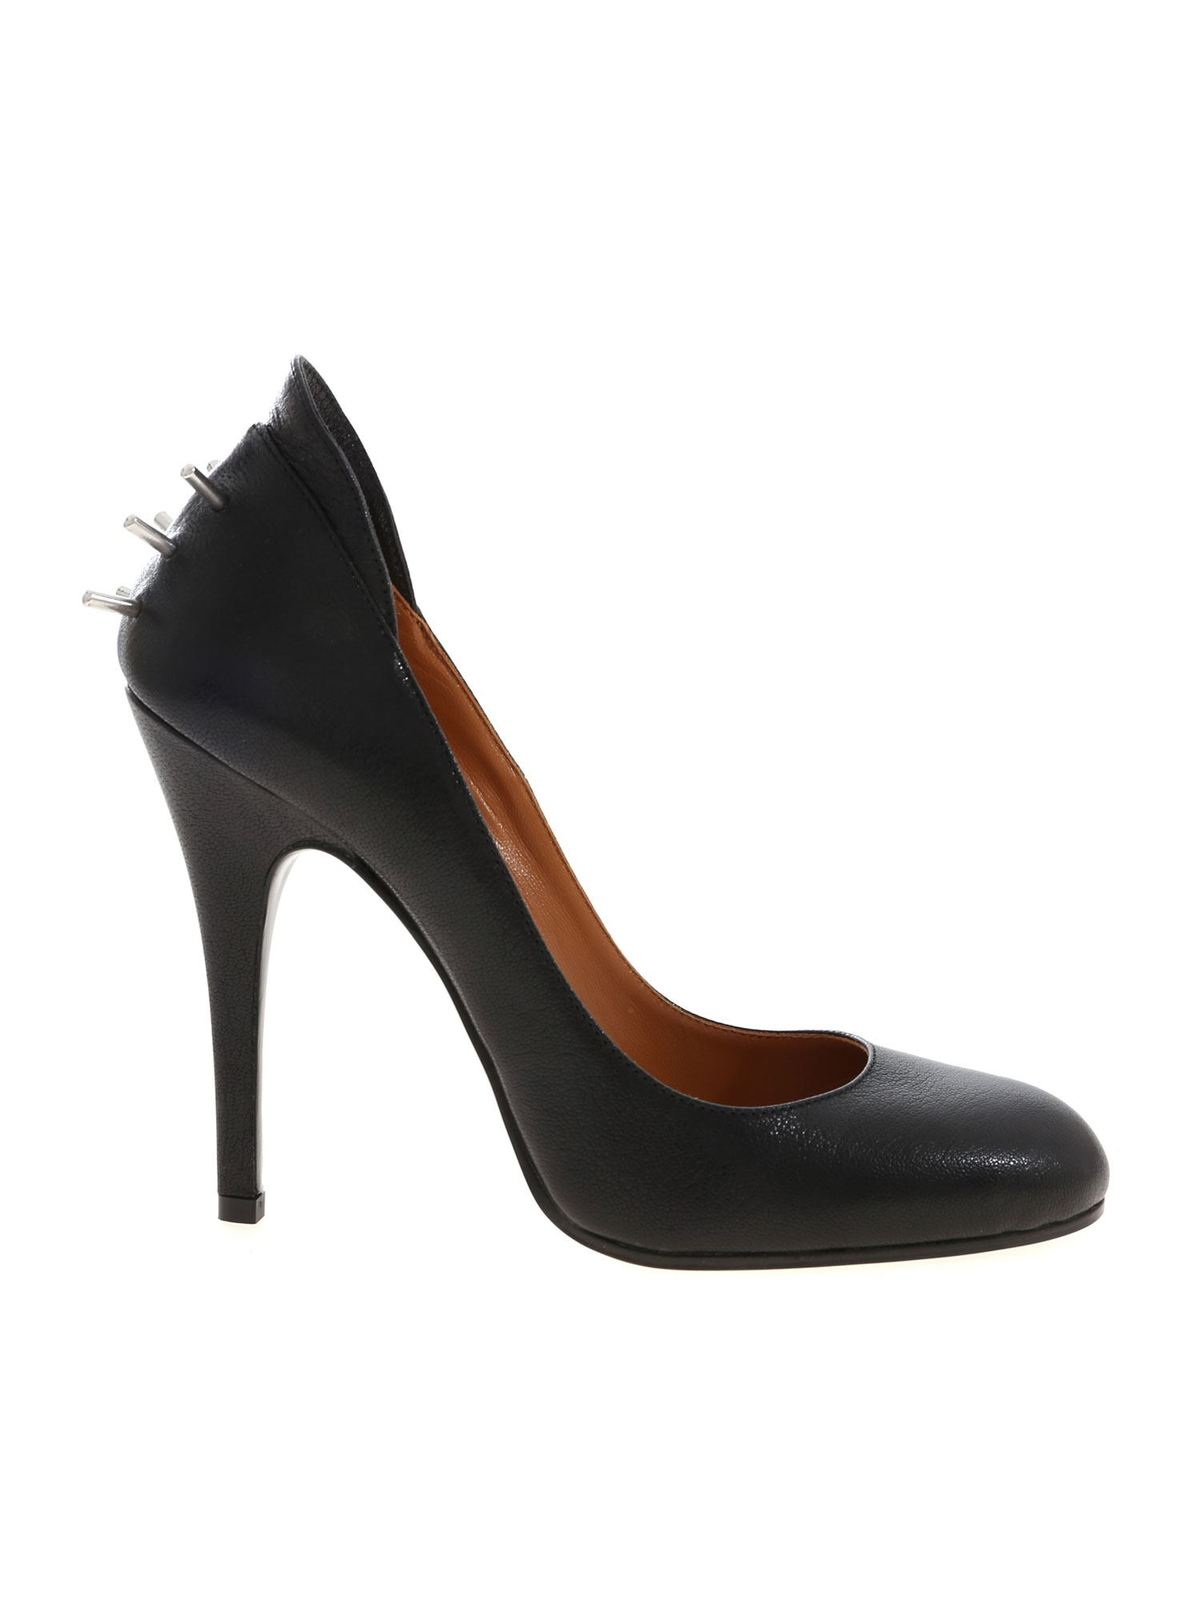 Vivienne Westwood SEX COURT PUMPS IN BLACK